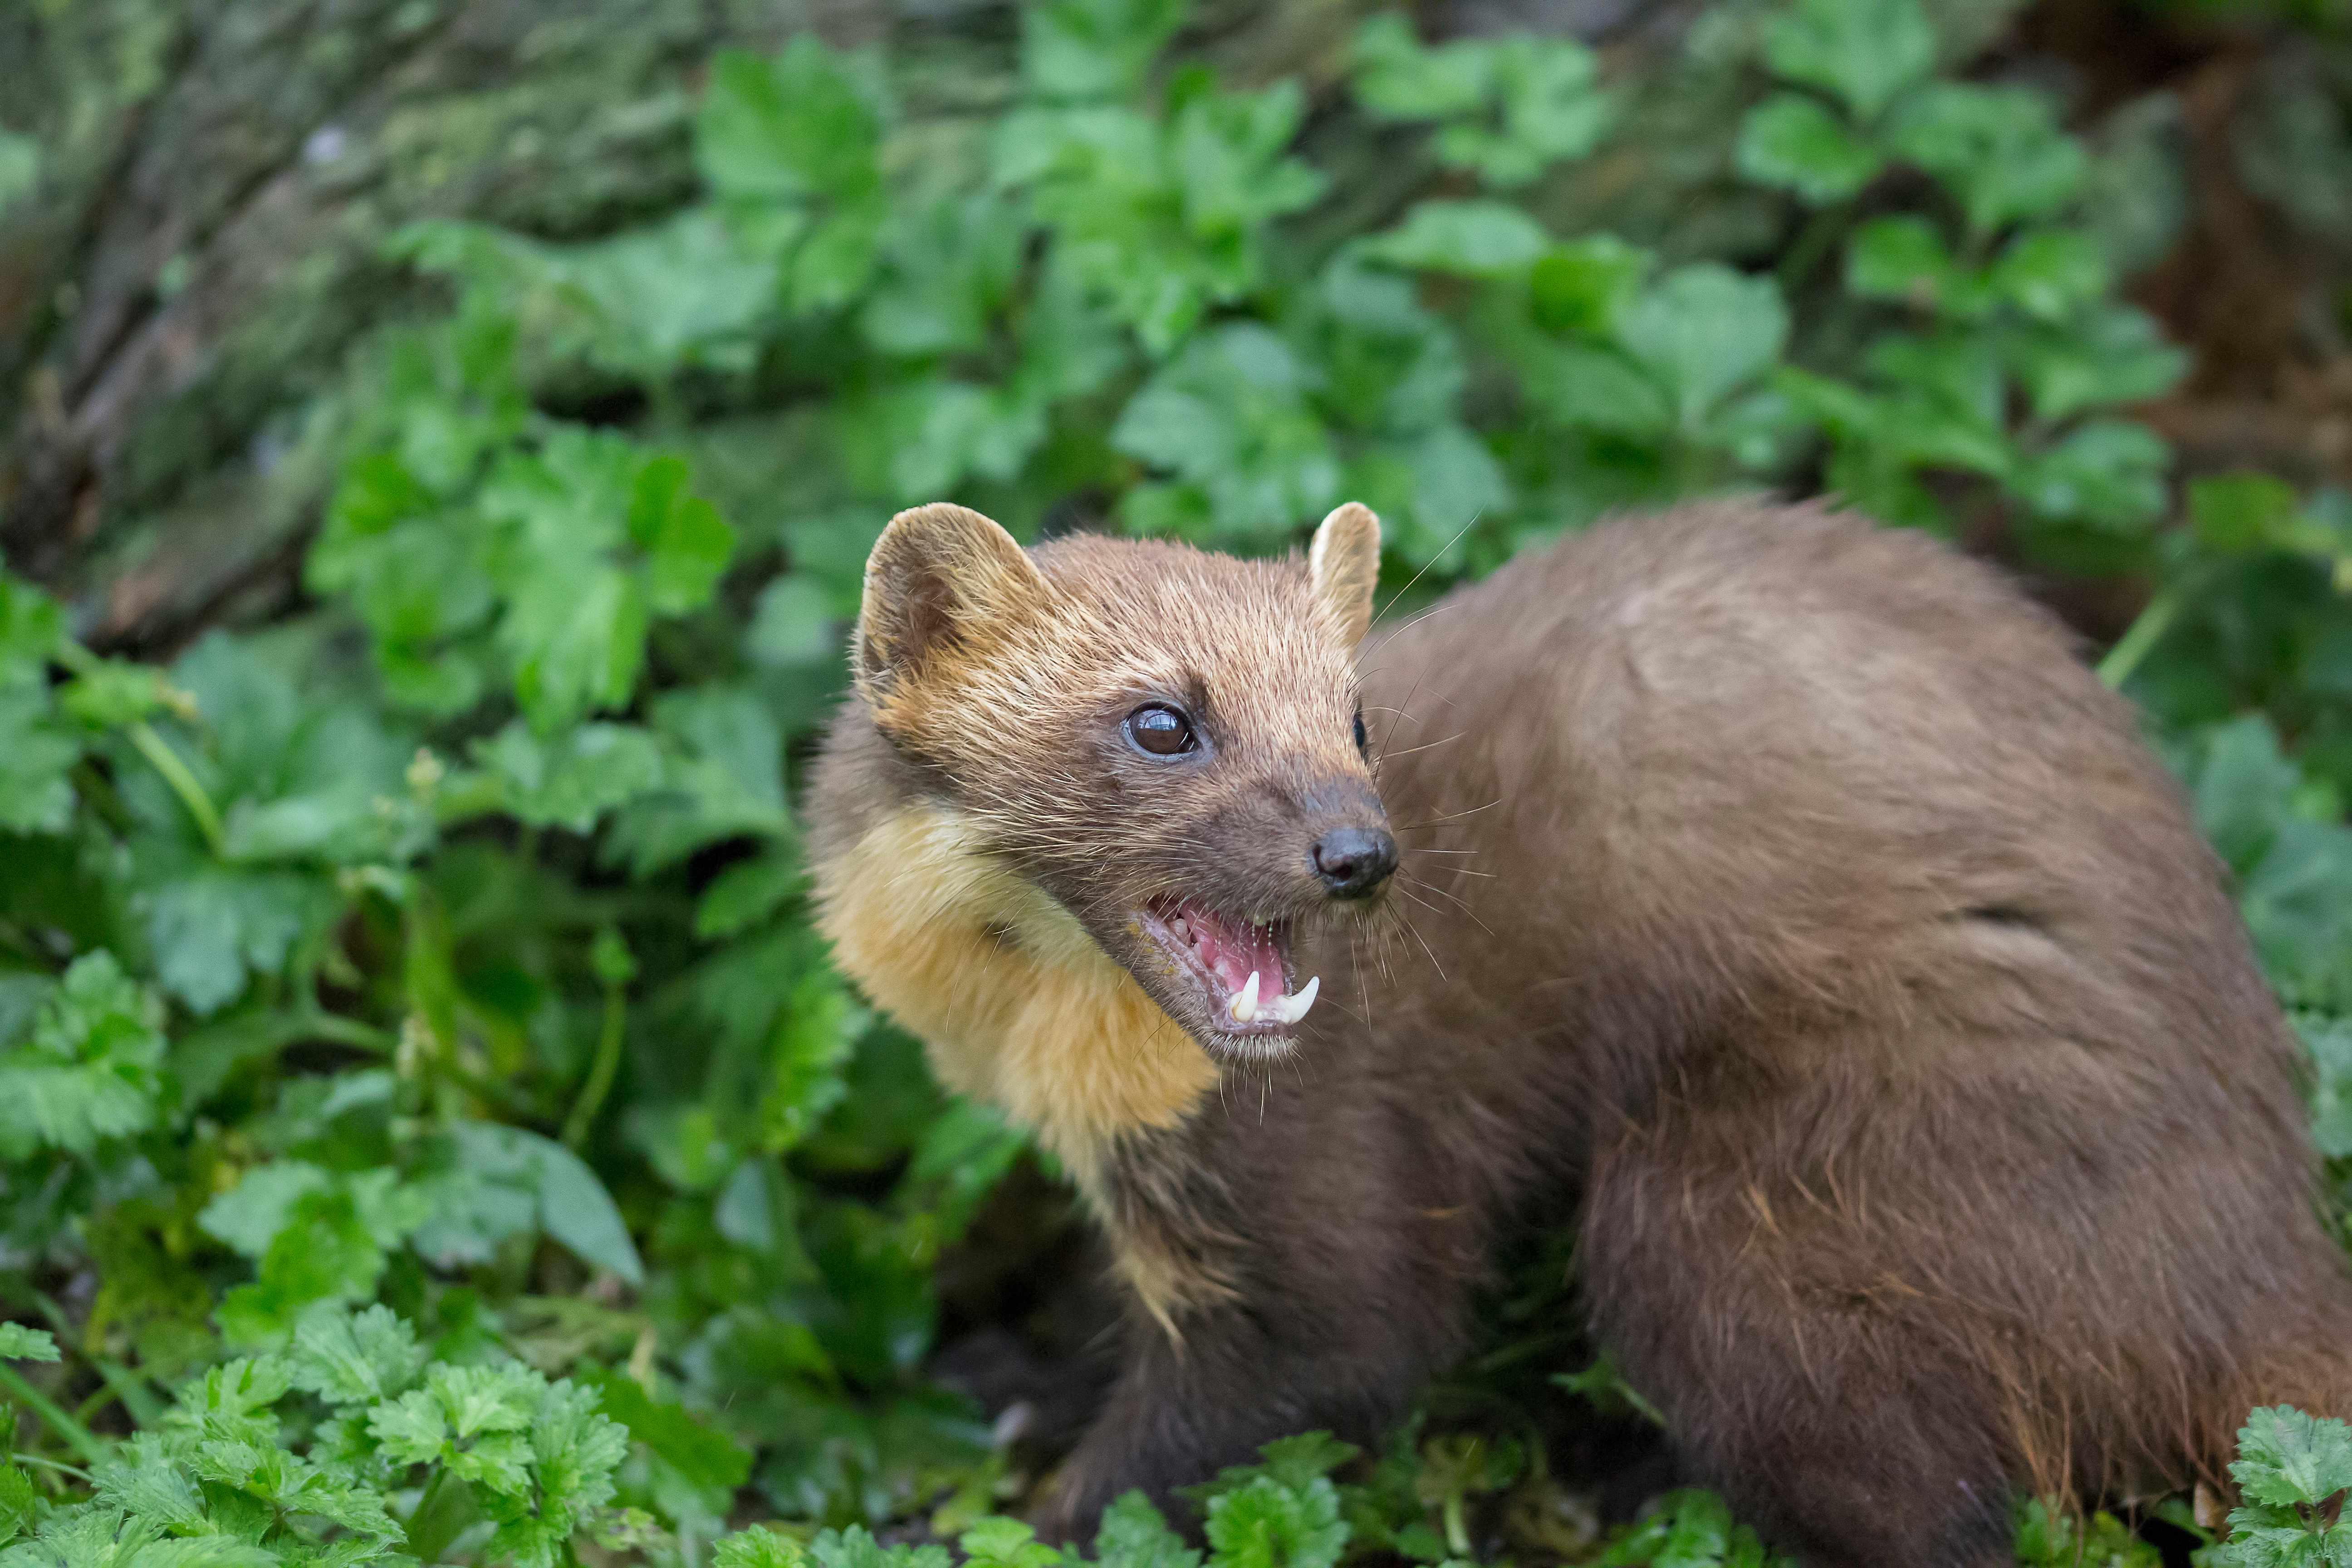 Pine marten hunting in the grass © Paul Carpenter / Getty